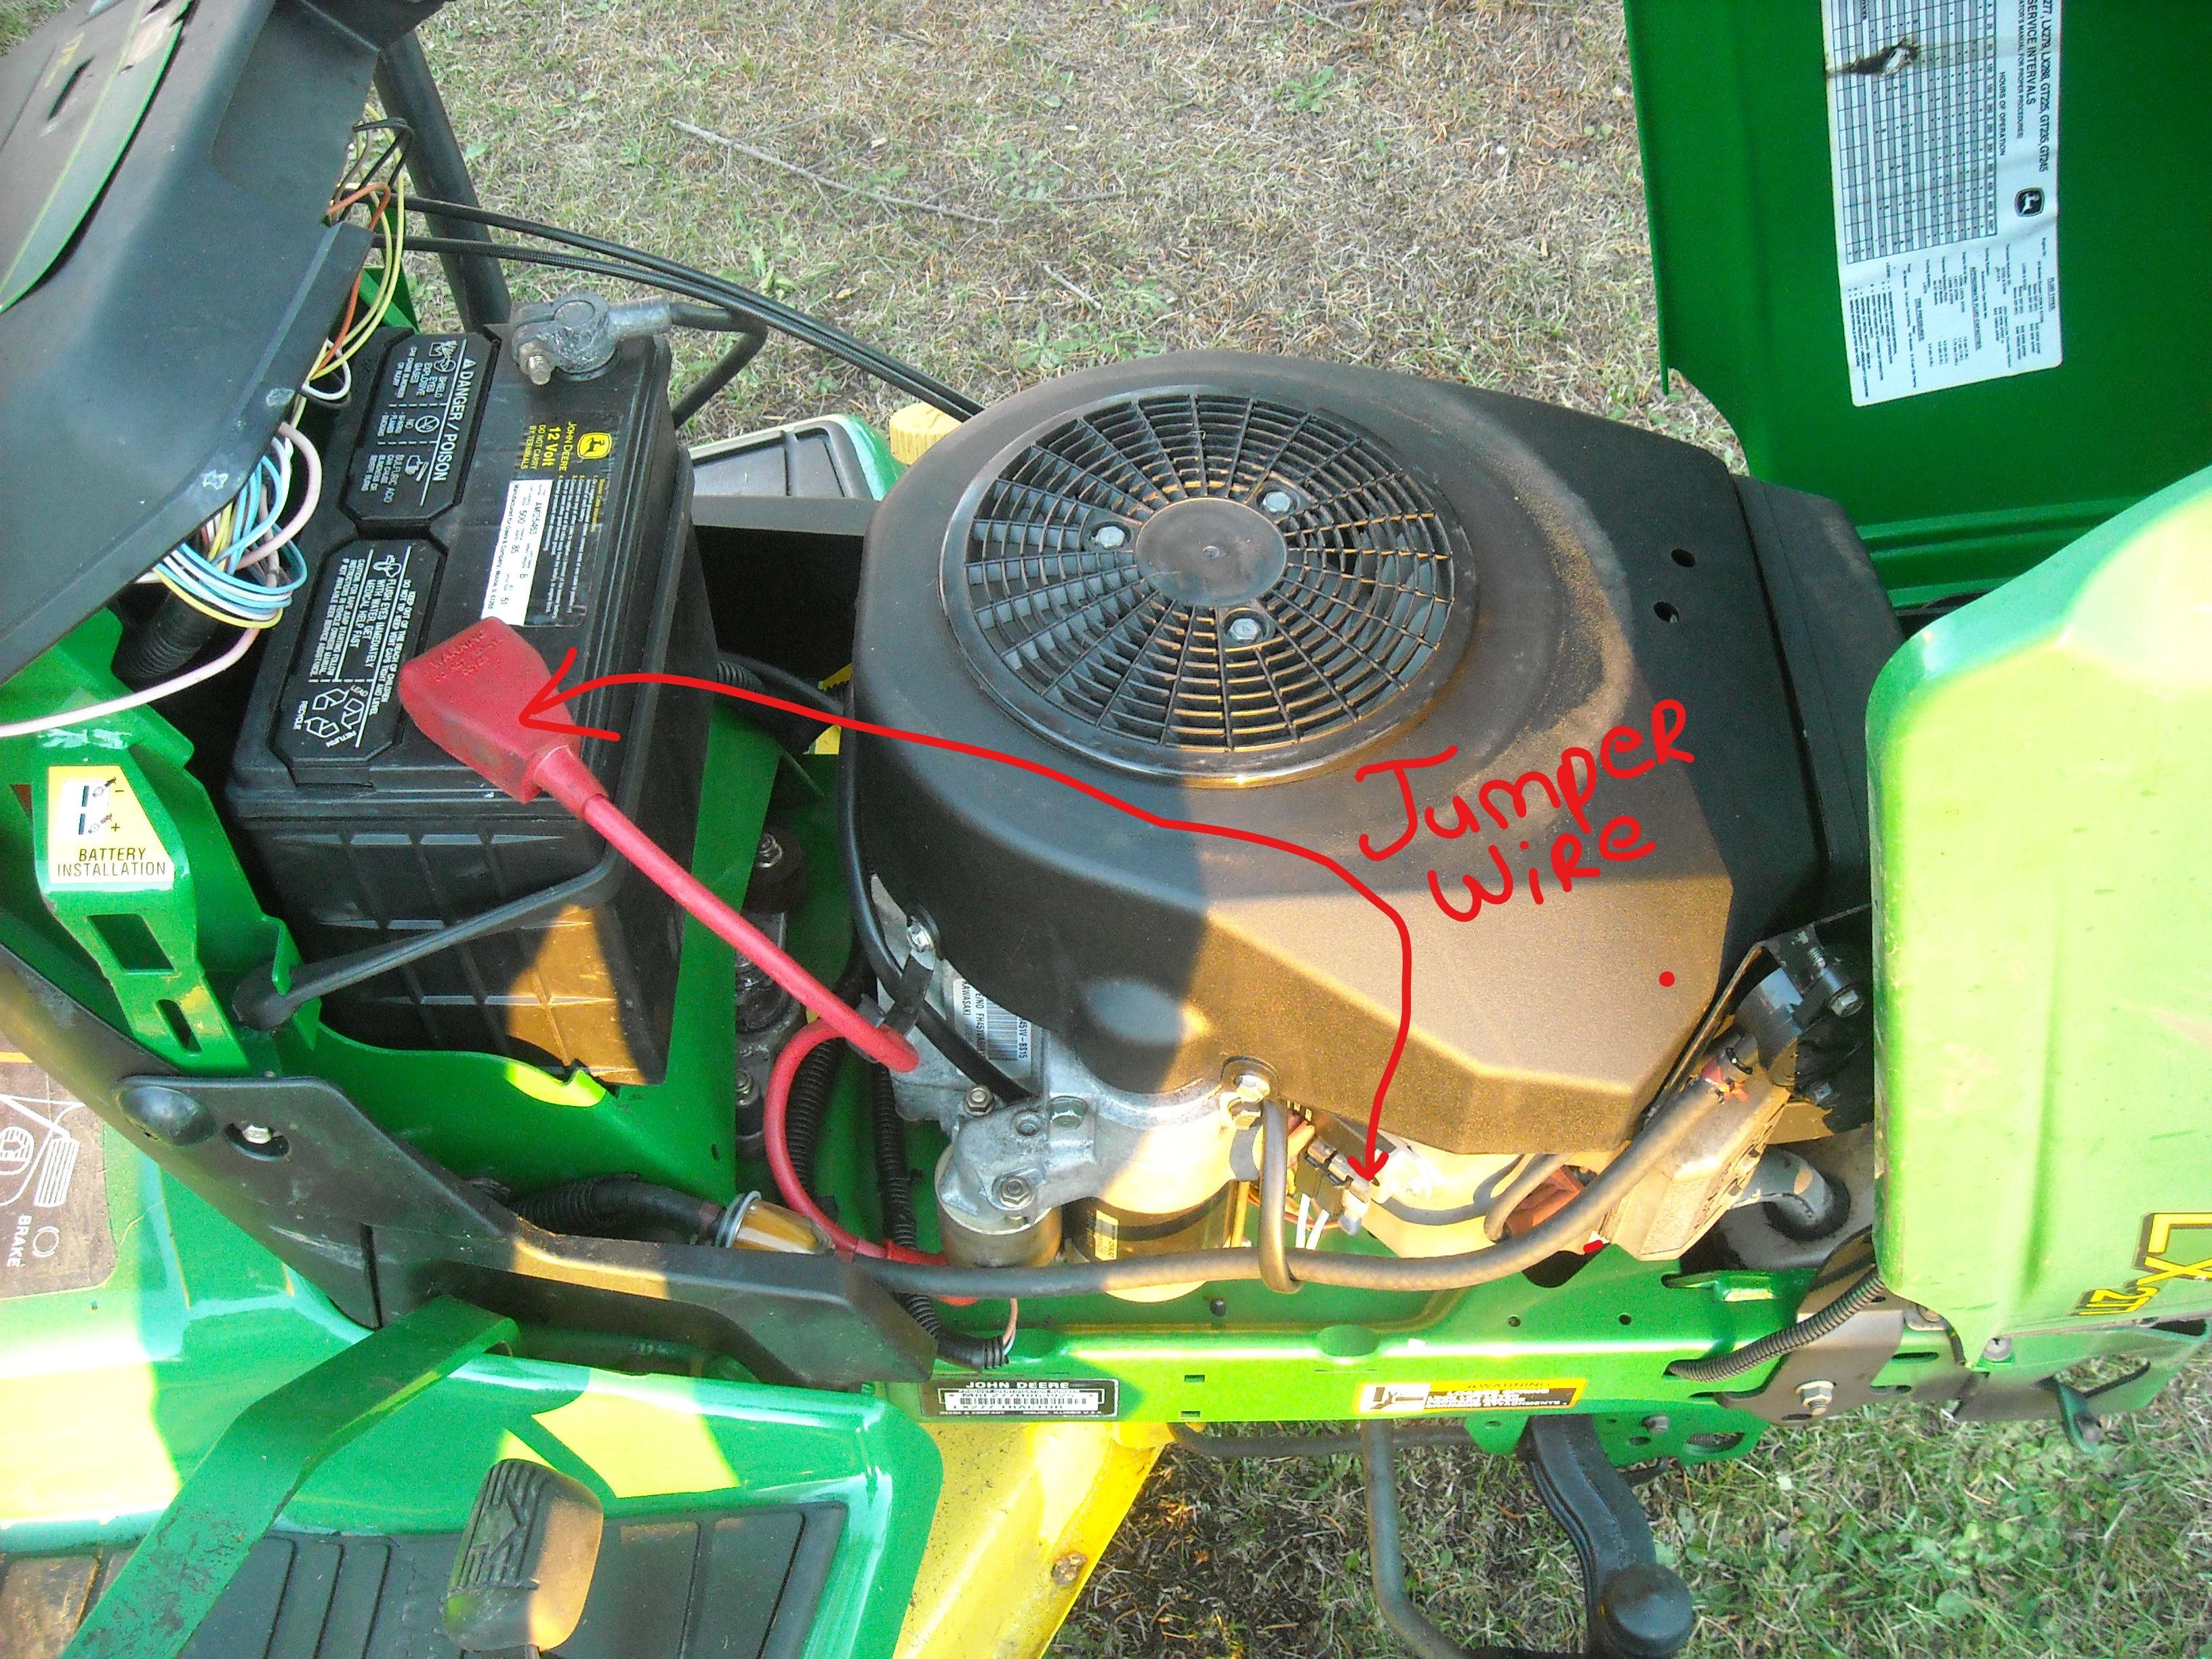 Looking for an LX277 wiring diagram | My Tractor Forum on l120 john deere wiring diagram, lt160 john deere wiring diagram, lx277 john deere wiring diagram, x465 john deere wiring diagram, f911 john deere wiring diagram, g100 john deere wiring diagram, sst15 john deere wiring diagram, lx178 john deere wiring diagram, l110 john deere wiring diagram, x485 john deere wiring diagram, g110 john deere wiring diagram, lt155 john deere wiring diagram, lt180 john deere wiring diagram,